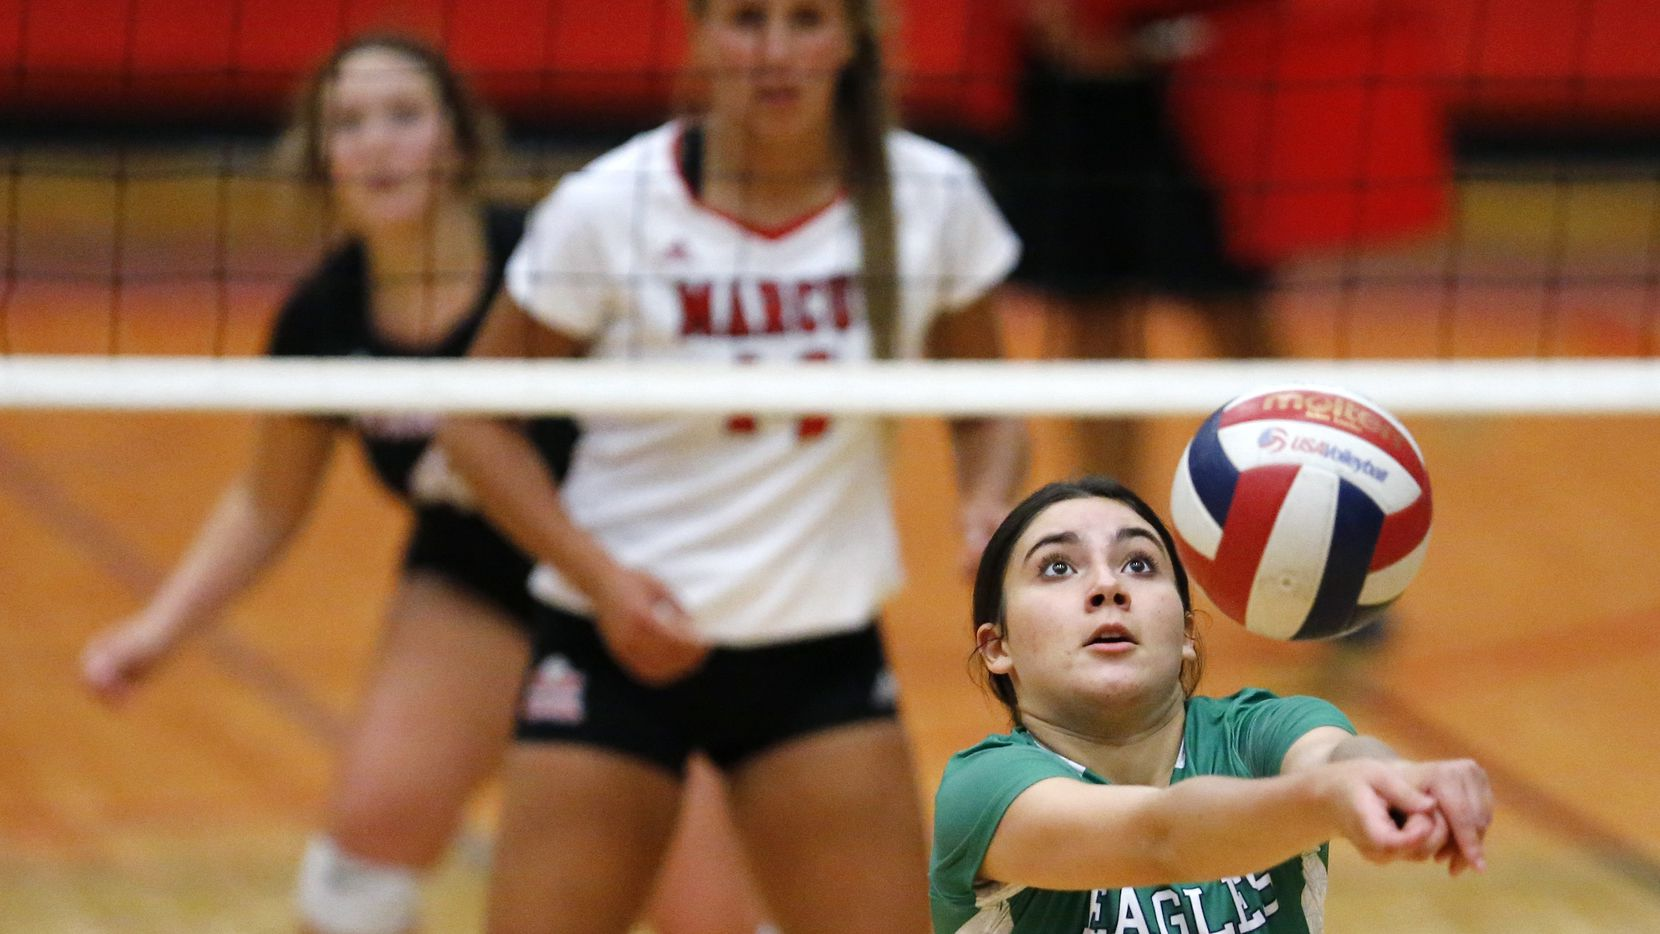 Northwest Eaton's Lorena Gomez keeps a point alive during Tuesday's 25-22, 24-26, 25-18, 25-12 win over Flower Mound Marcus. (Stewart F. House/Special Contributor)